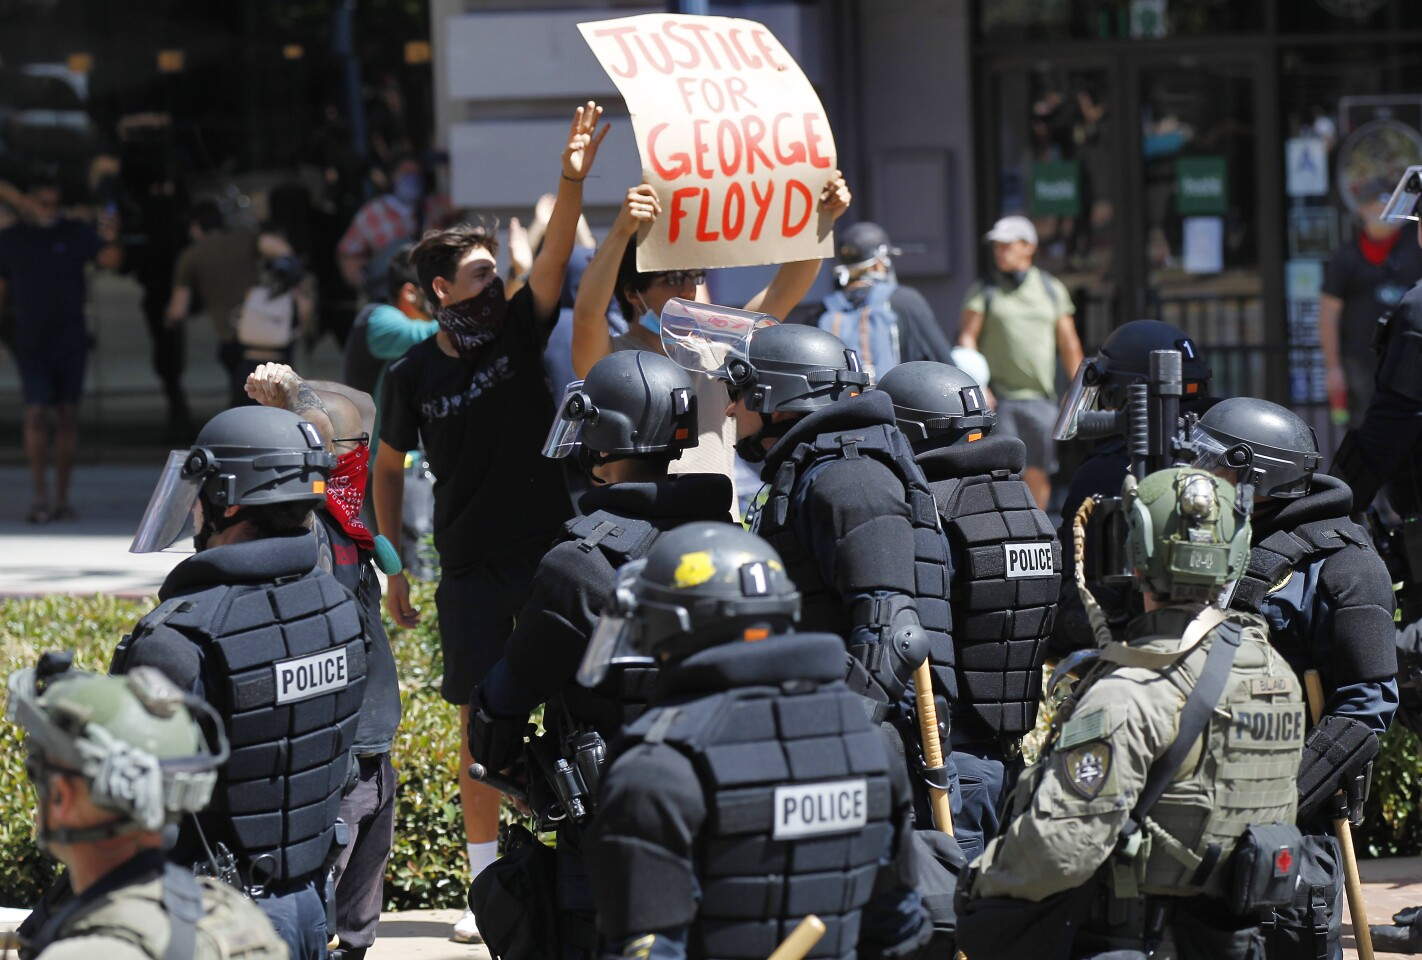 Protesters blocked streets in downtown San Diego as San Diego police armed in riot gear stopped them on May 31, 2020. The group was protesting the death of George Floyd.